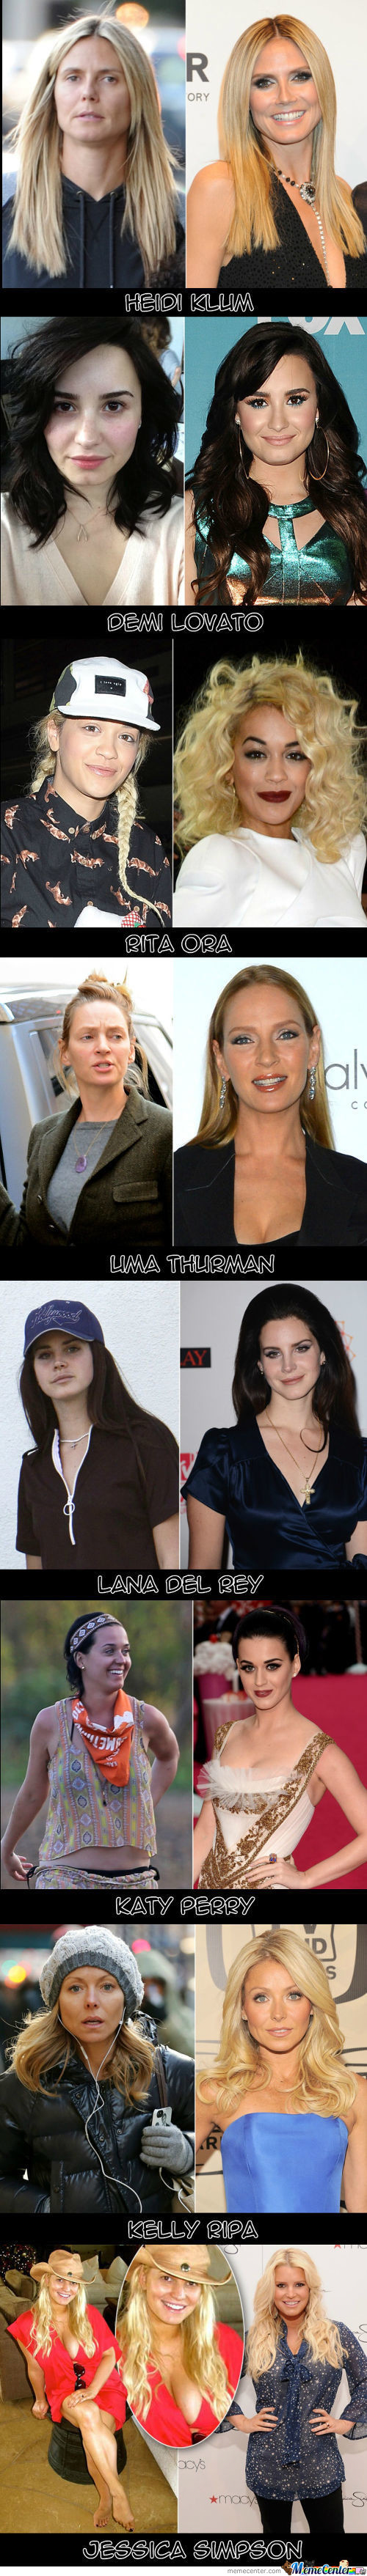 Some Celebrities Without Makeup Part 2